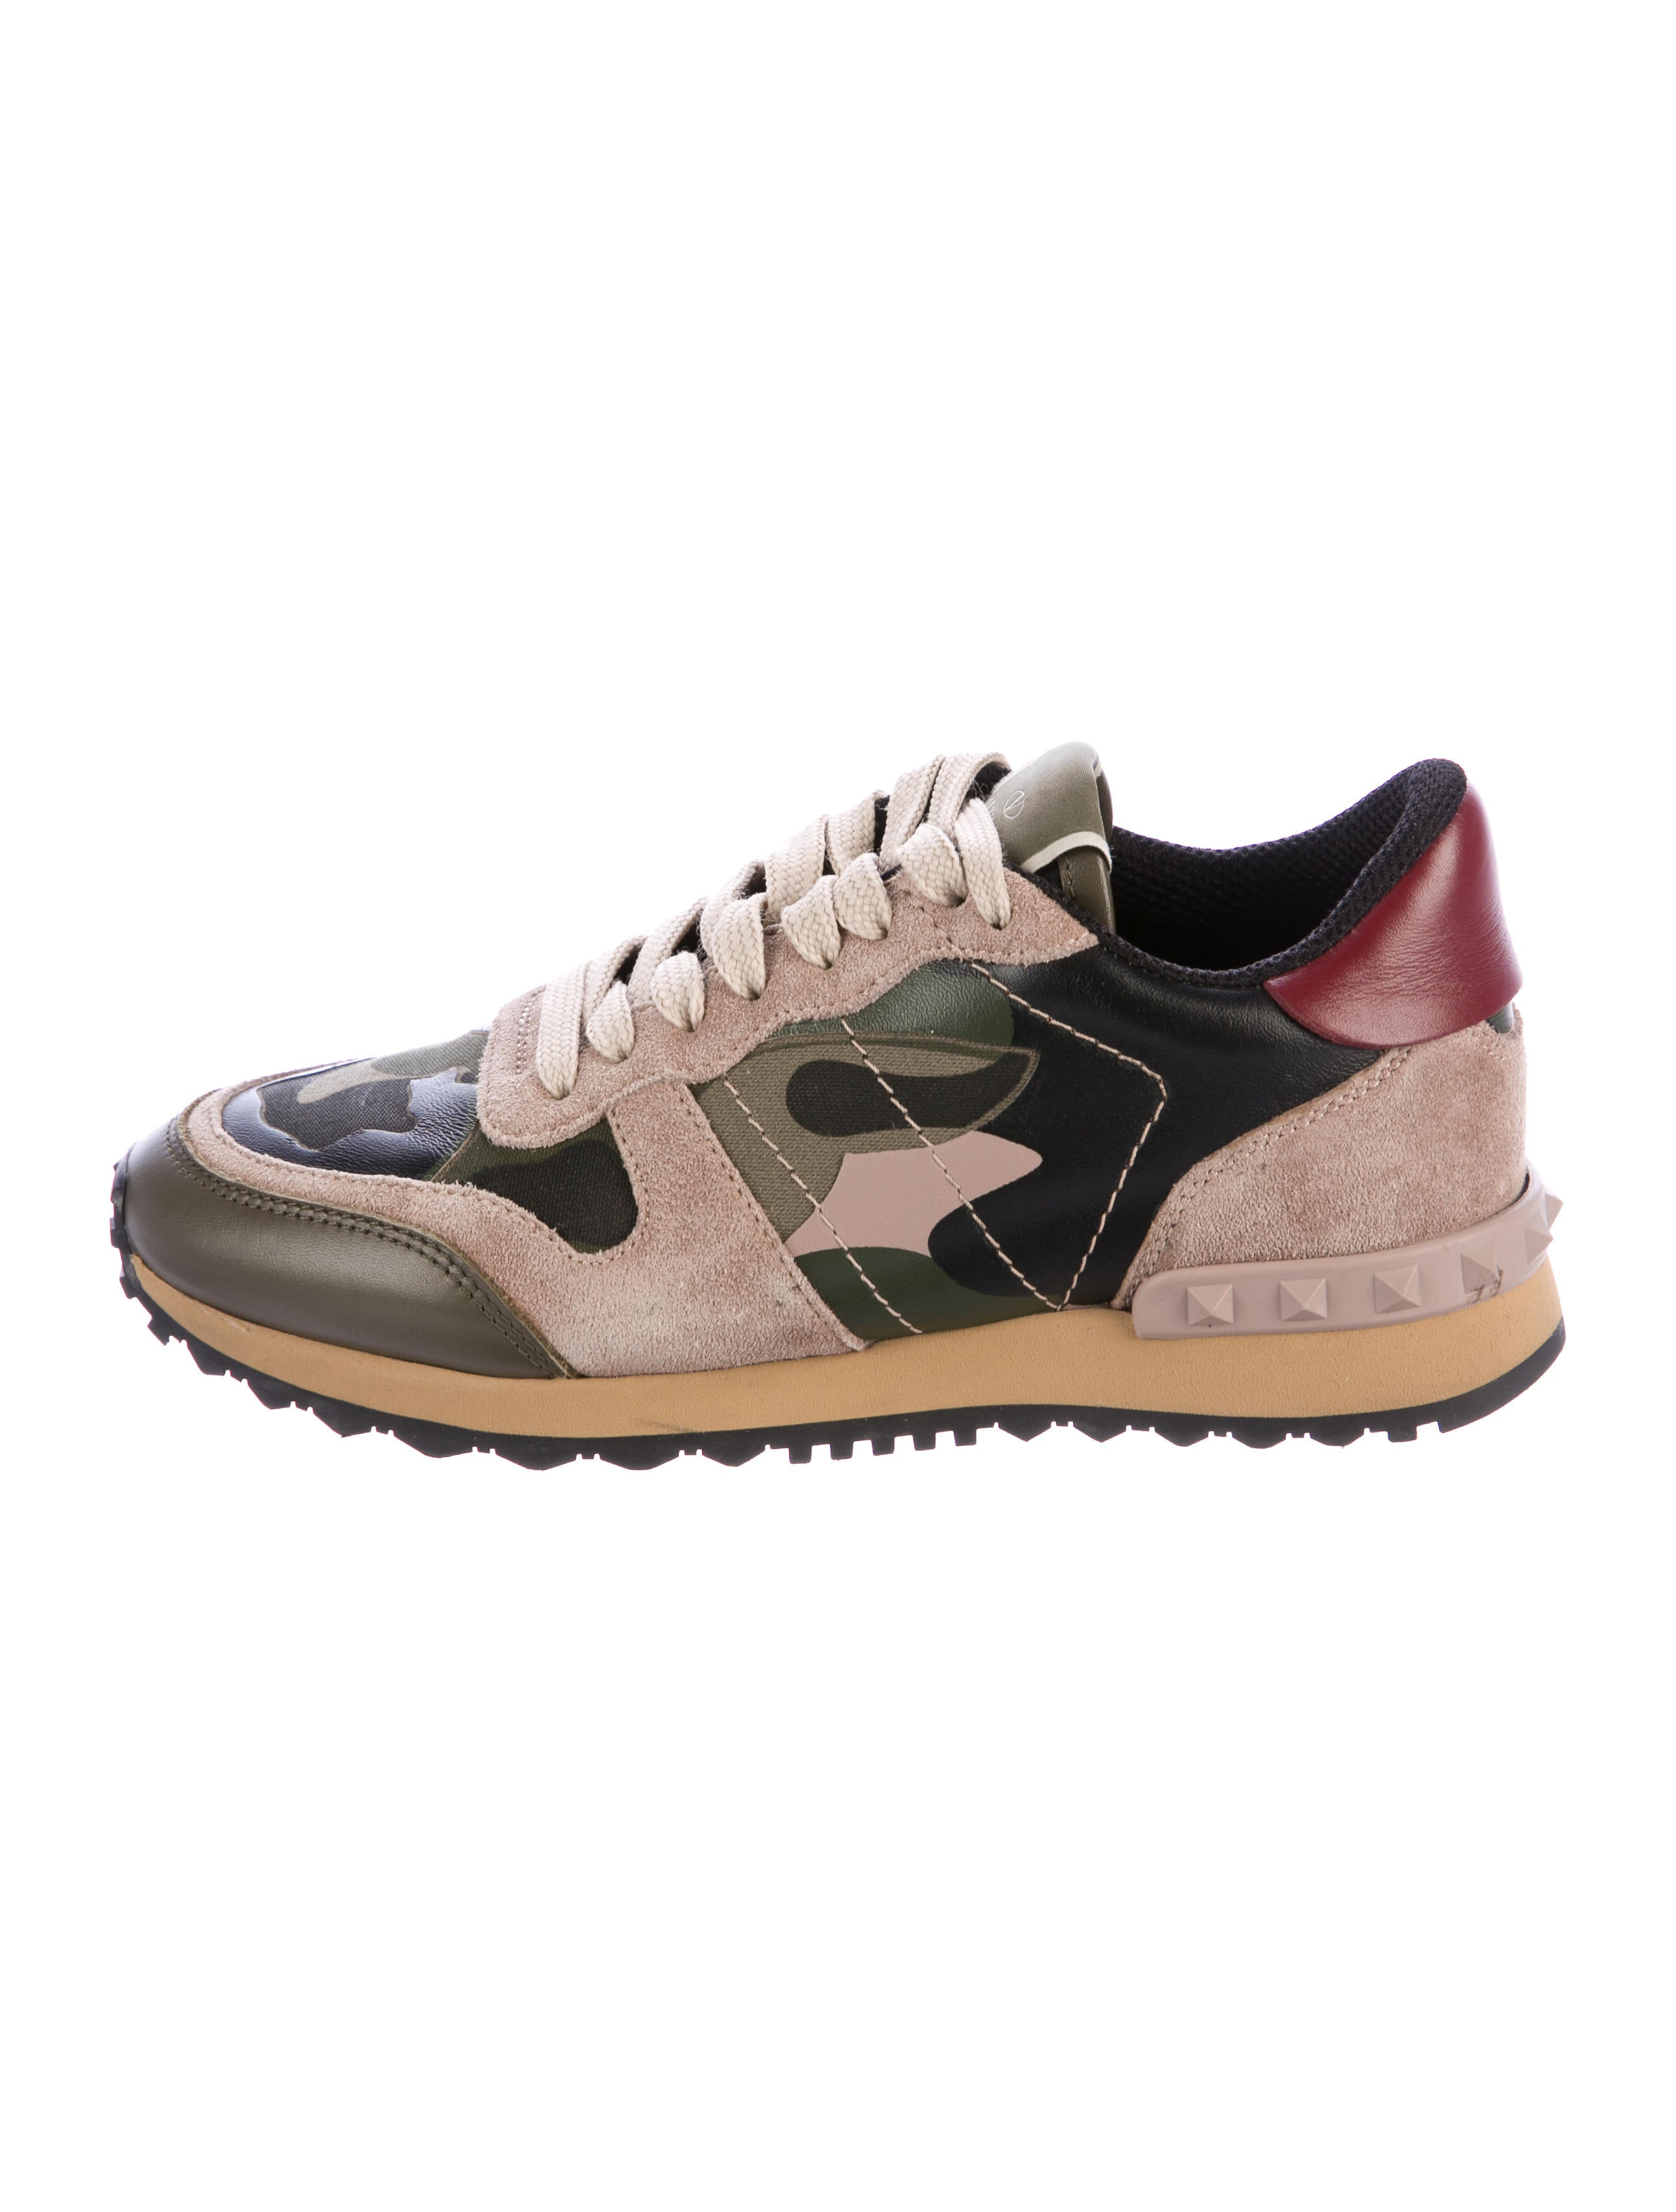 valentino camouflage rockrunner sneakers shoes val71373 the realreal. Black Bedroom Furniture Sets. Home Design Ideas